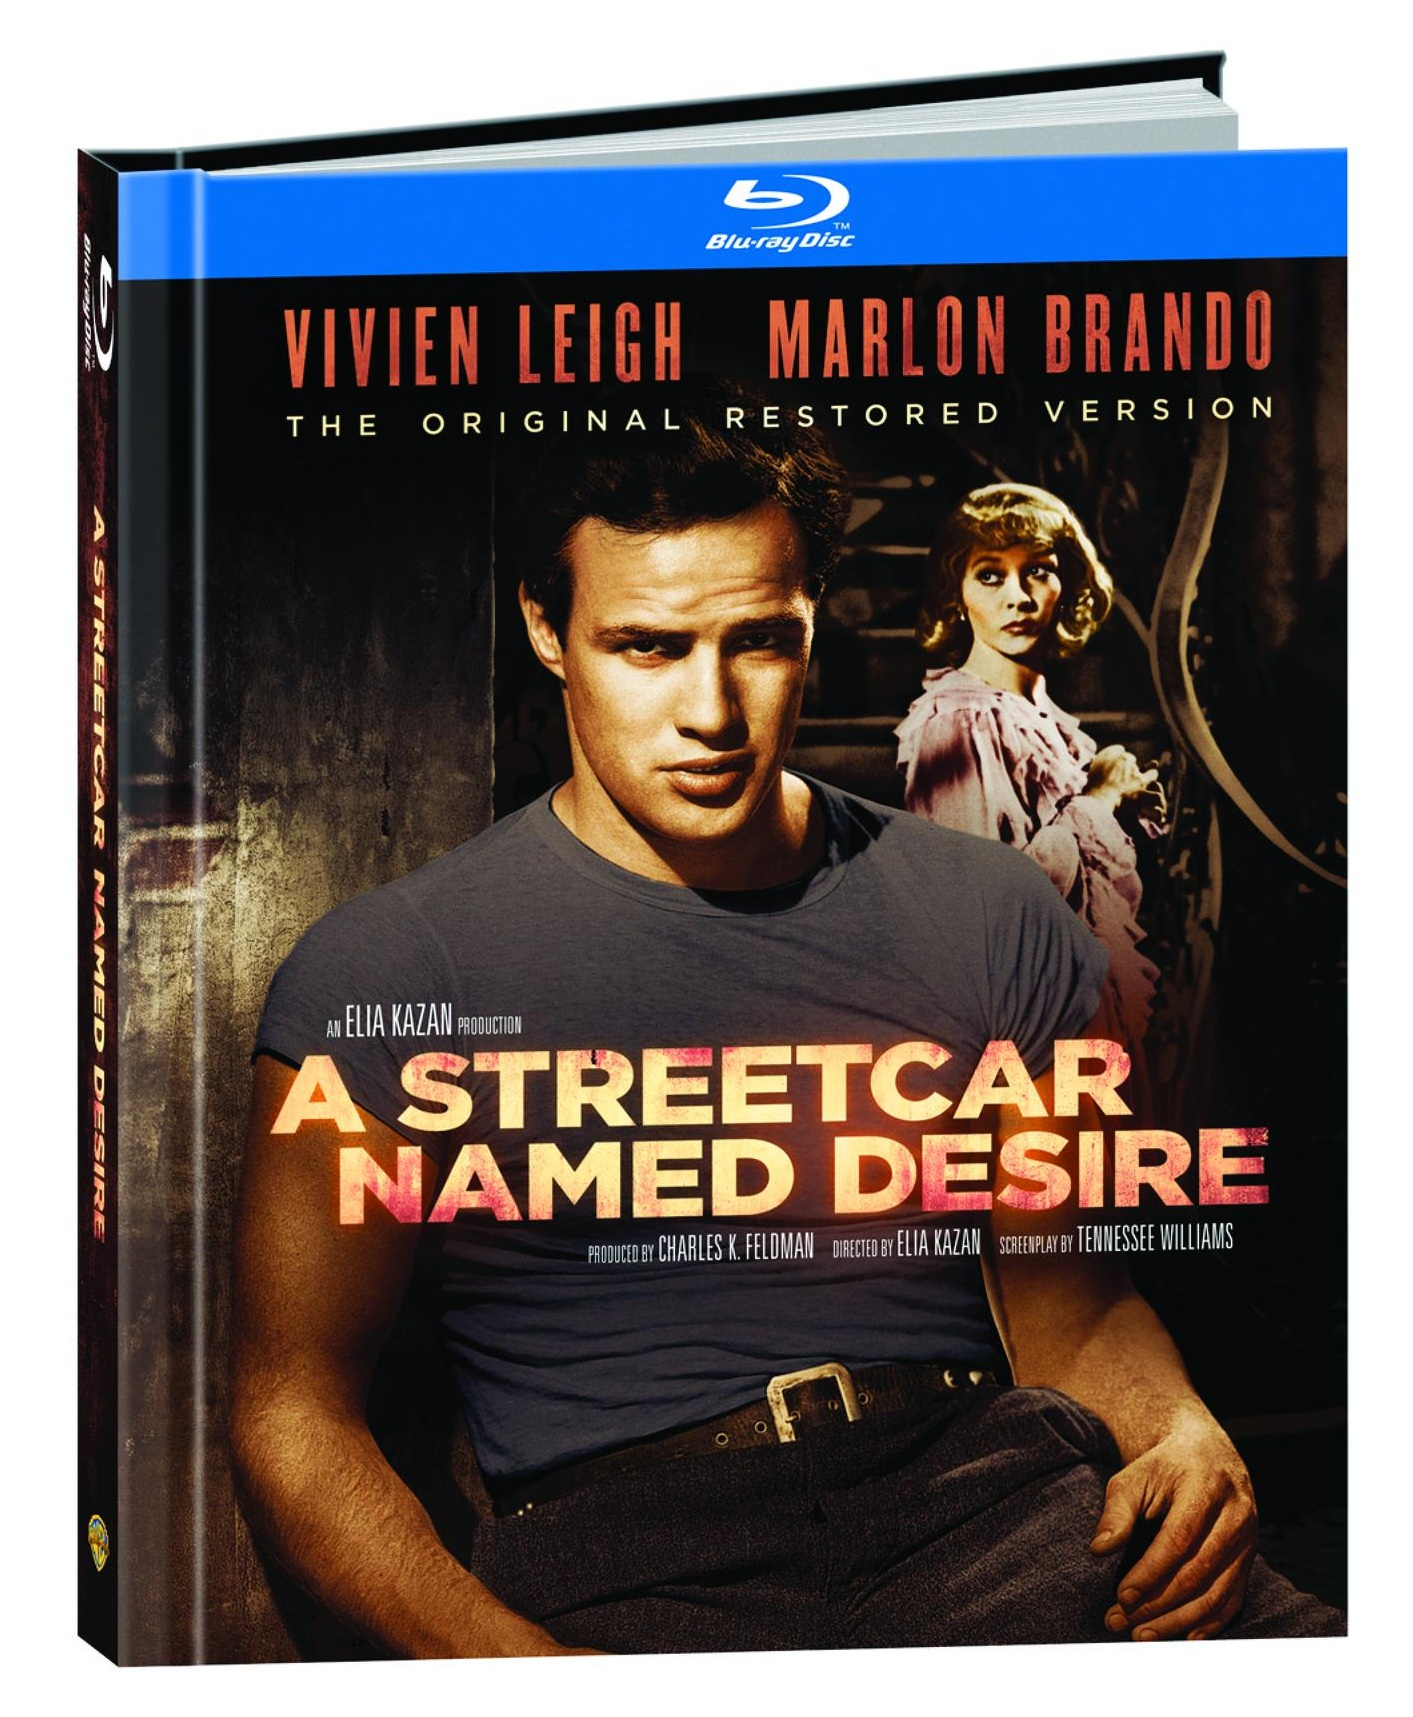 an analysis of the general structure of a streetcar named desire a play by tennessee williams